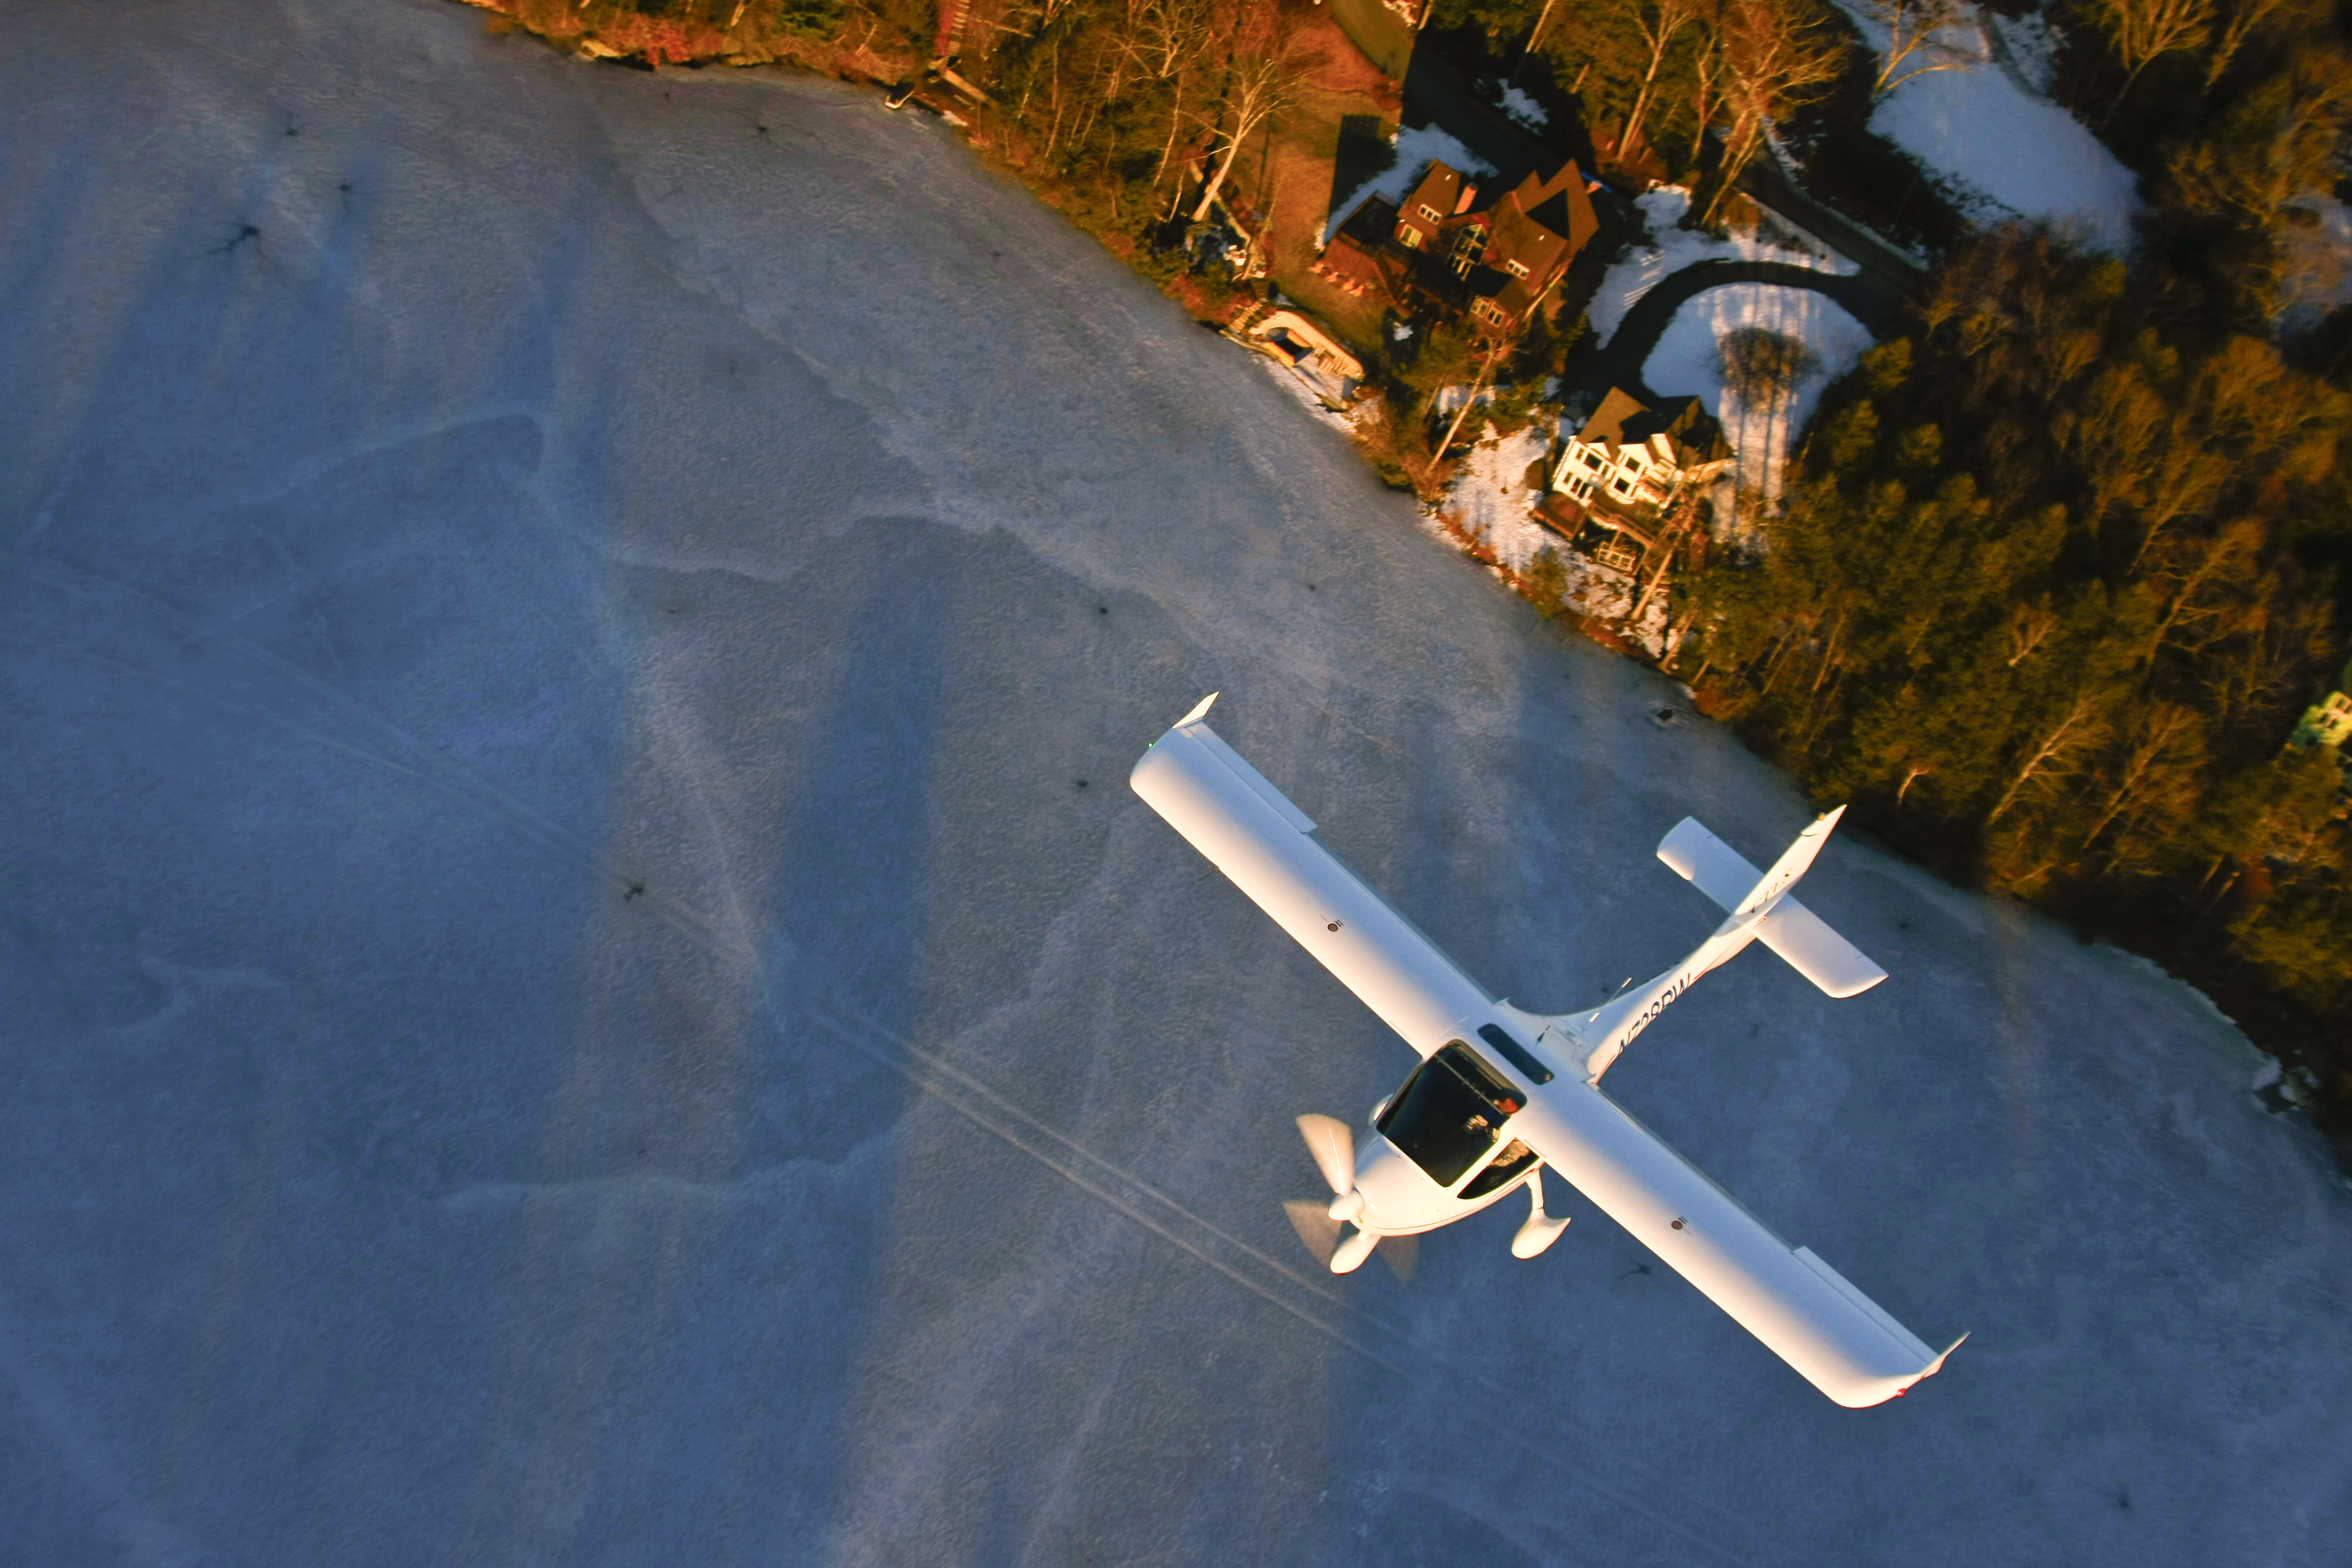 Inflight over frozen lake from above